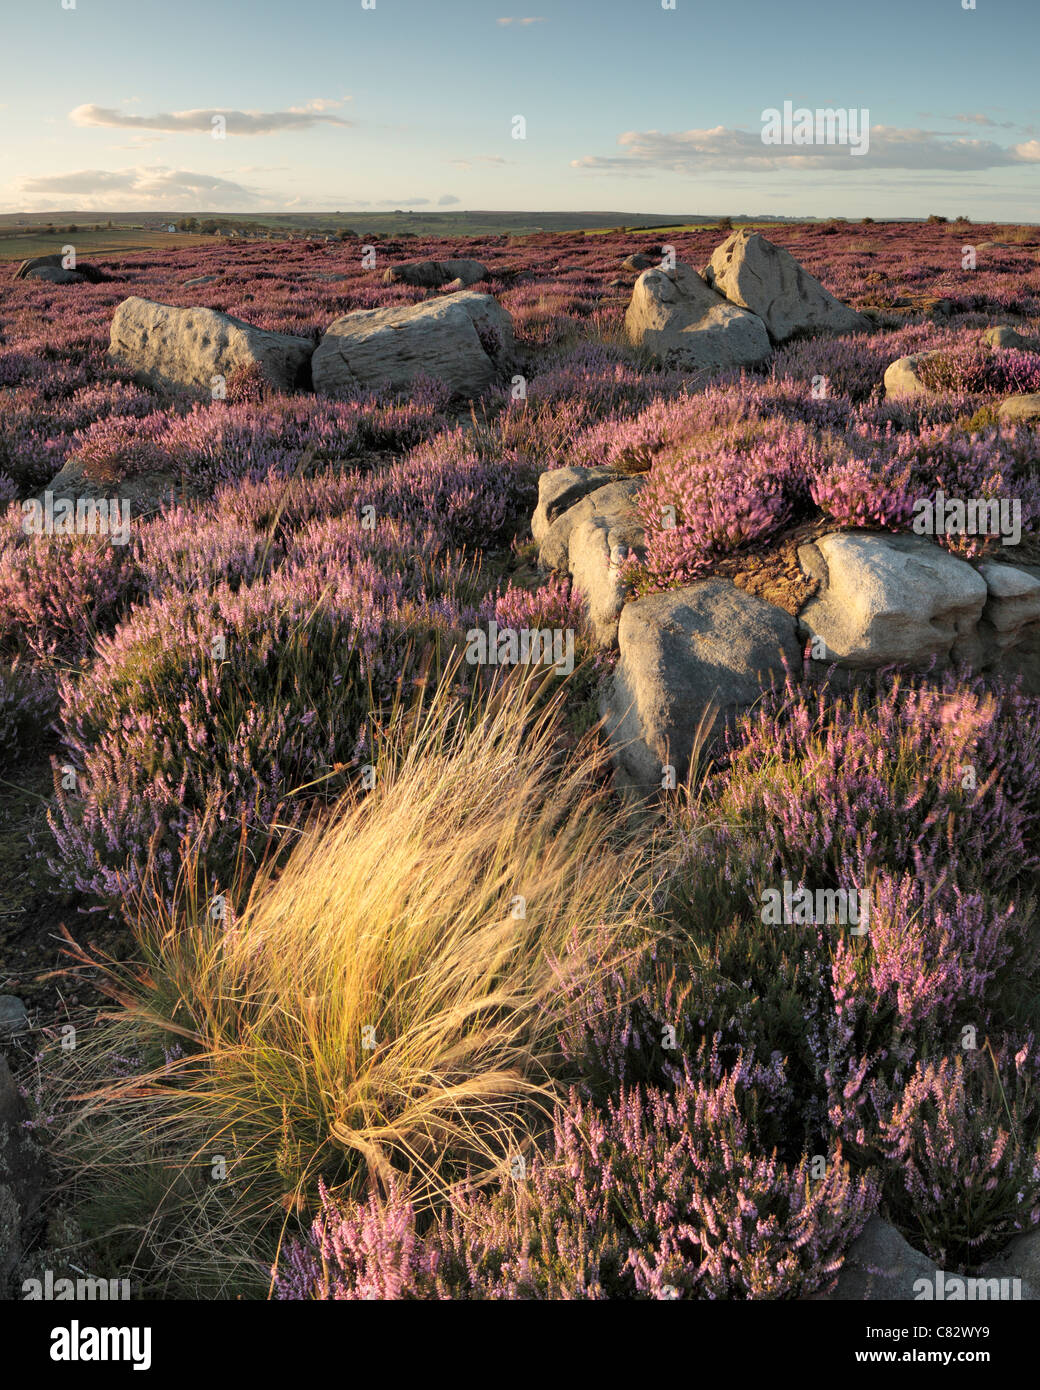 Bright purple heather covers the hills surrounding Thruscross Reservoir during late summer months. - Stock Image